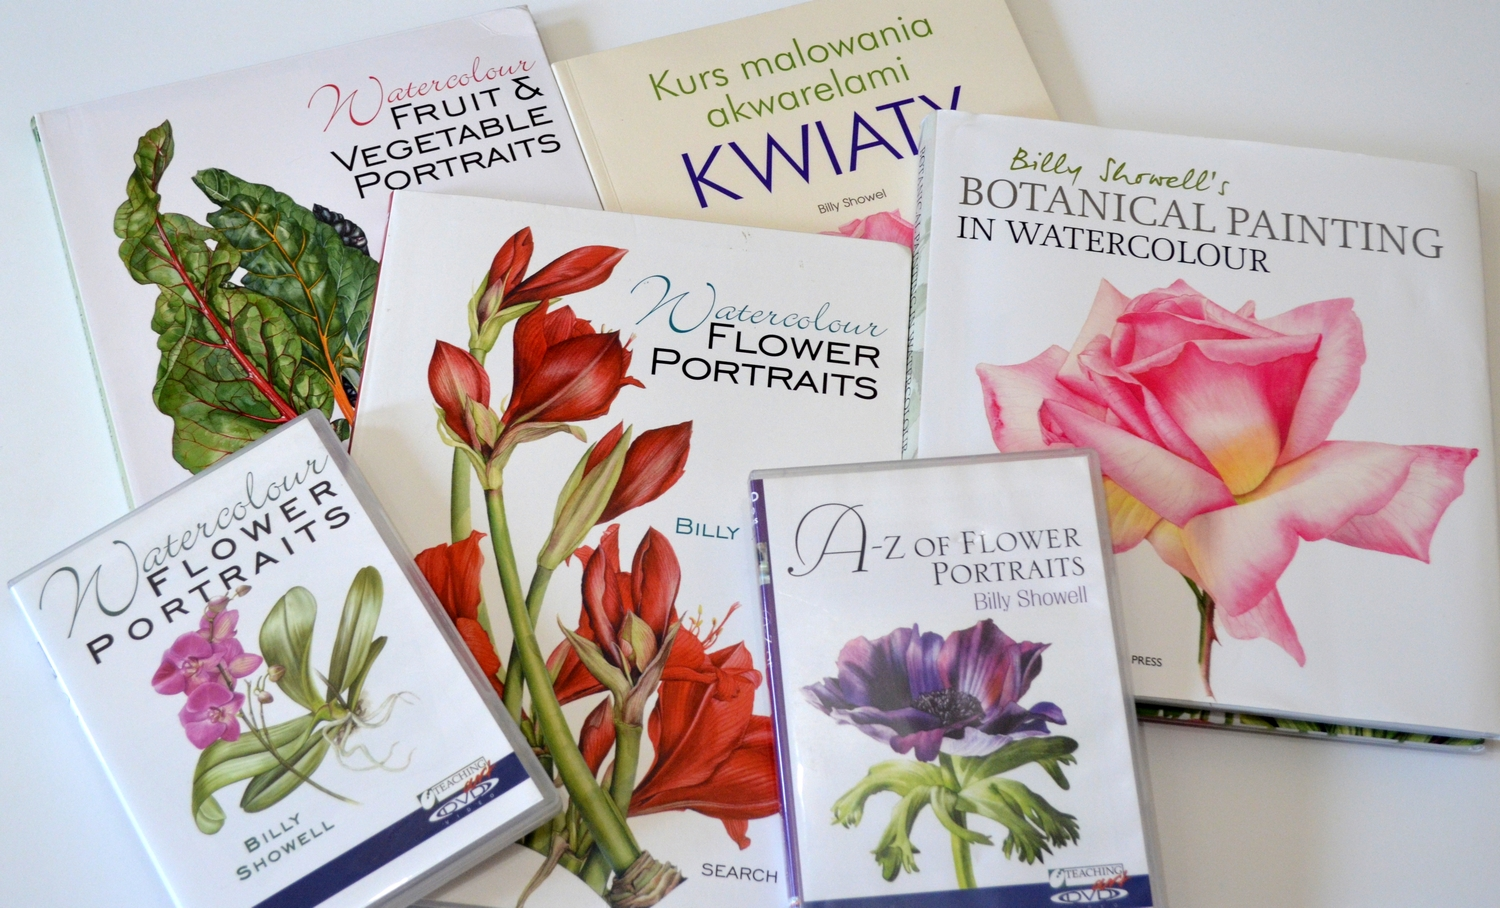 Heres My Billys Collection Unfortunately Polish Edition Of A Z Flower Portraits Looks Terrible When Compared With English And I Think